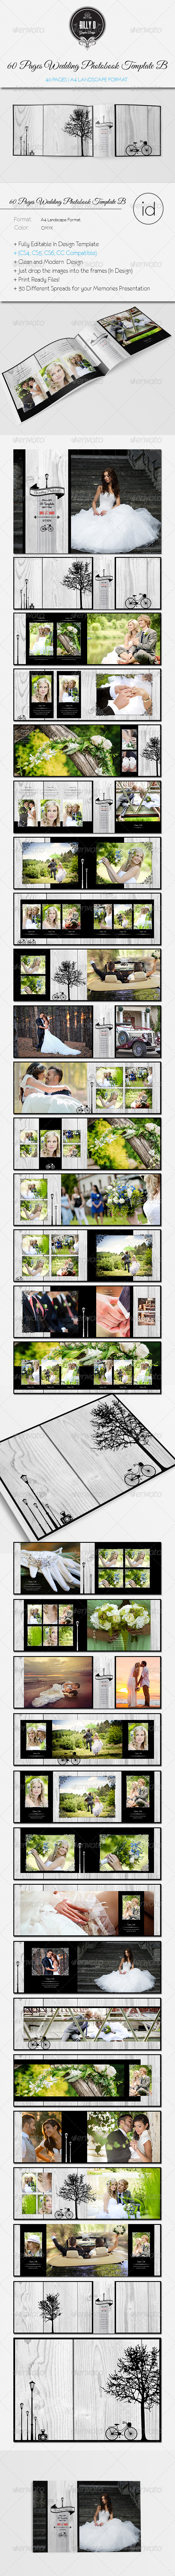 GraphicRiver 60 Pages Wedding PhotobookTemplate Be 8646157